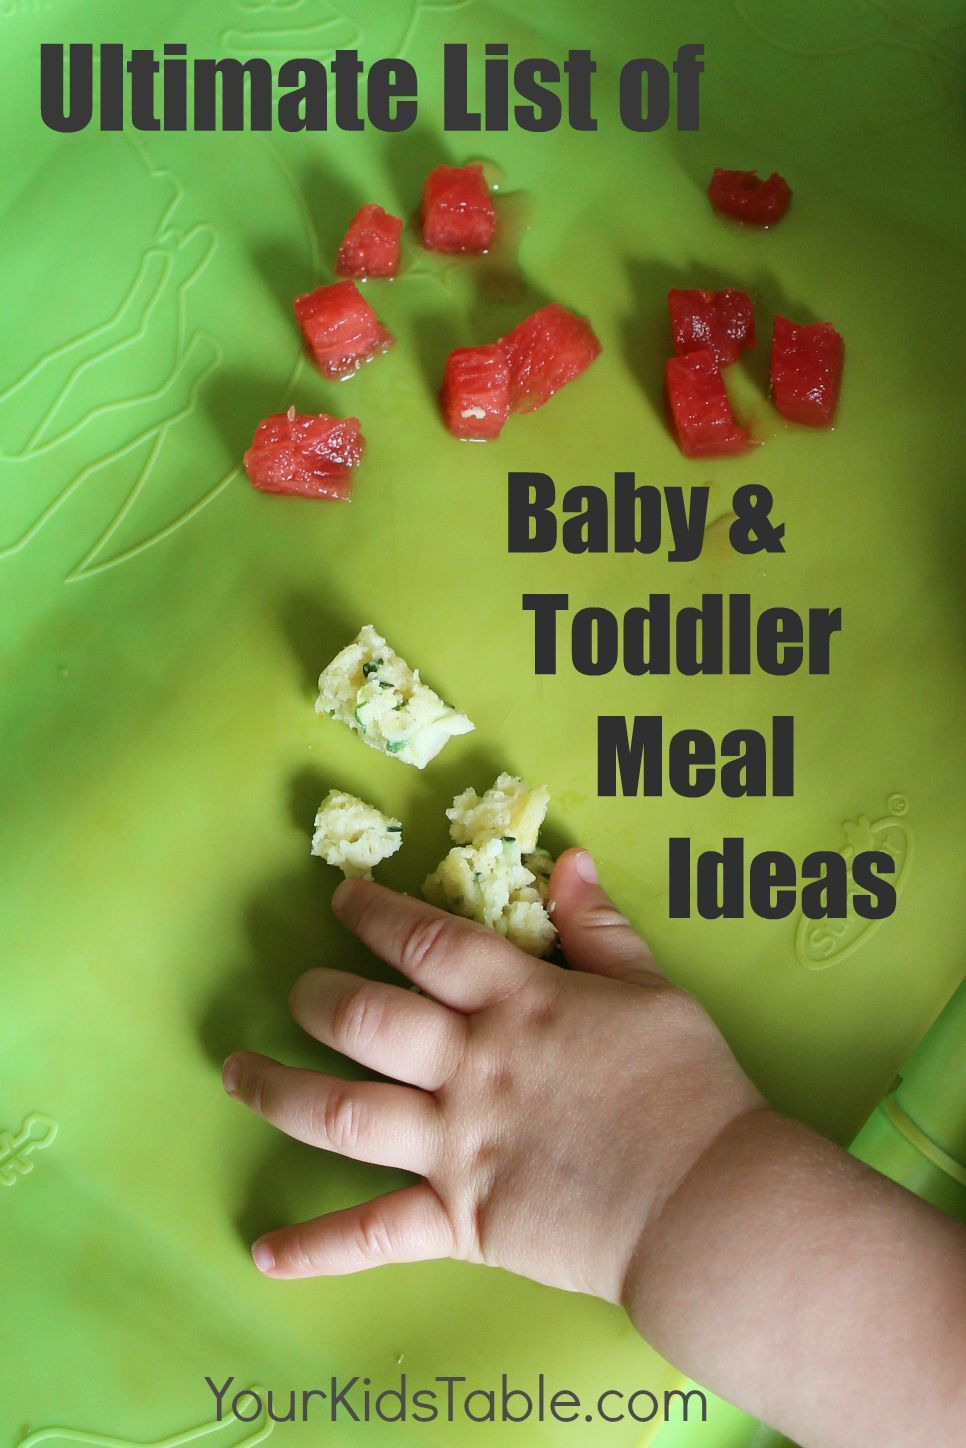 The ultimate list of babytoddler meal ideas baby meals meal baby food ultimate list of baby meal ideas forumfinder Gallery